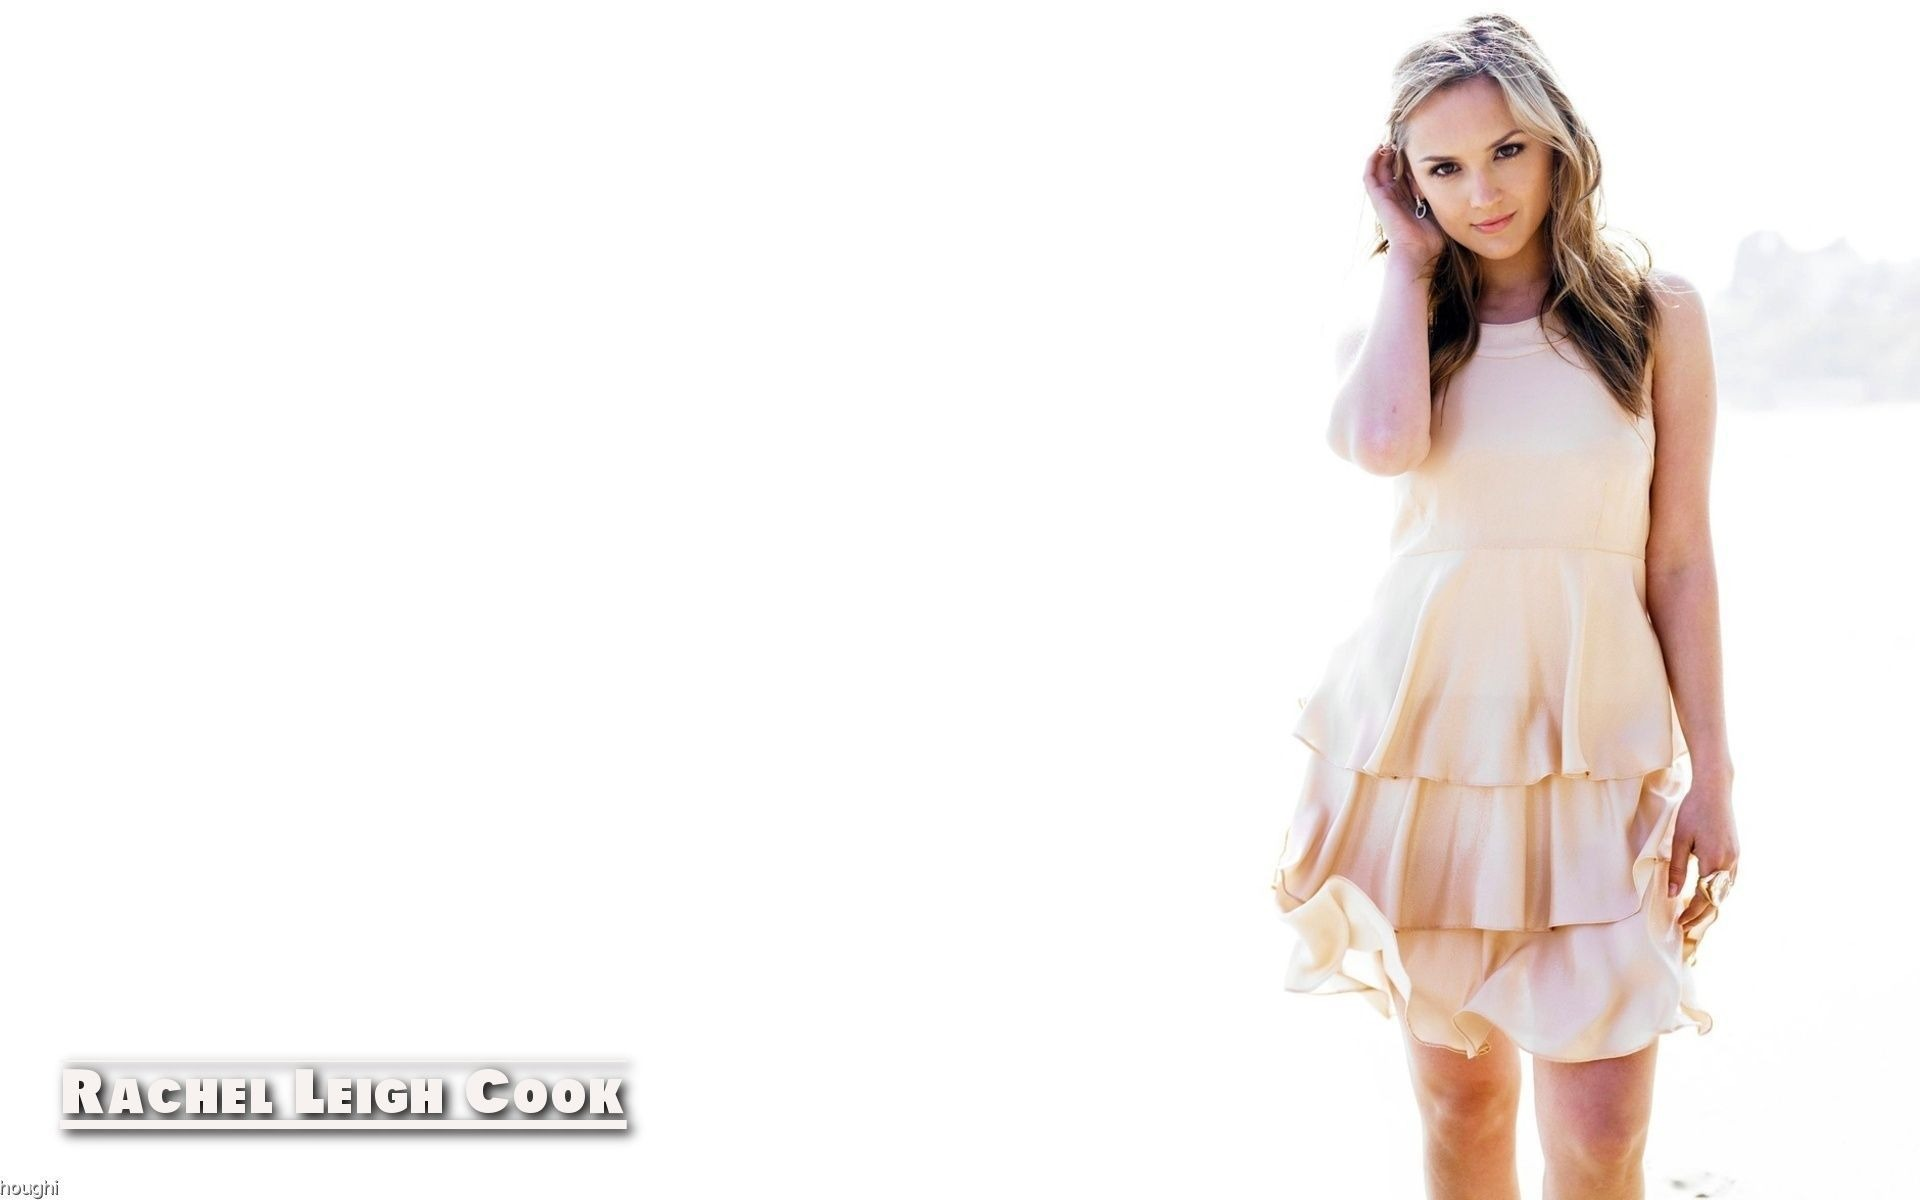 Rachael Leigh Cook #014 - 1920x1200 Wallpapers Pictures Photos Images